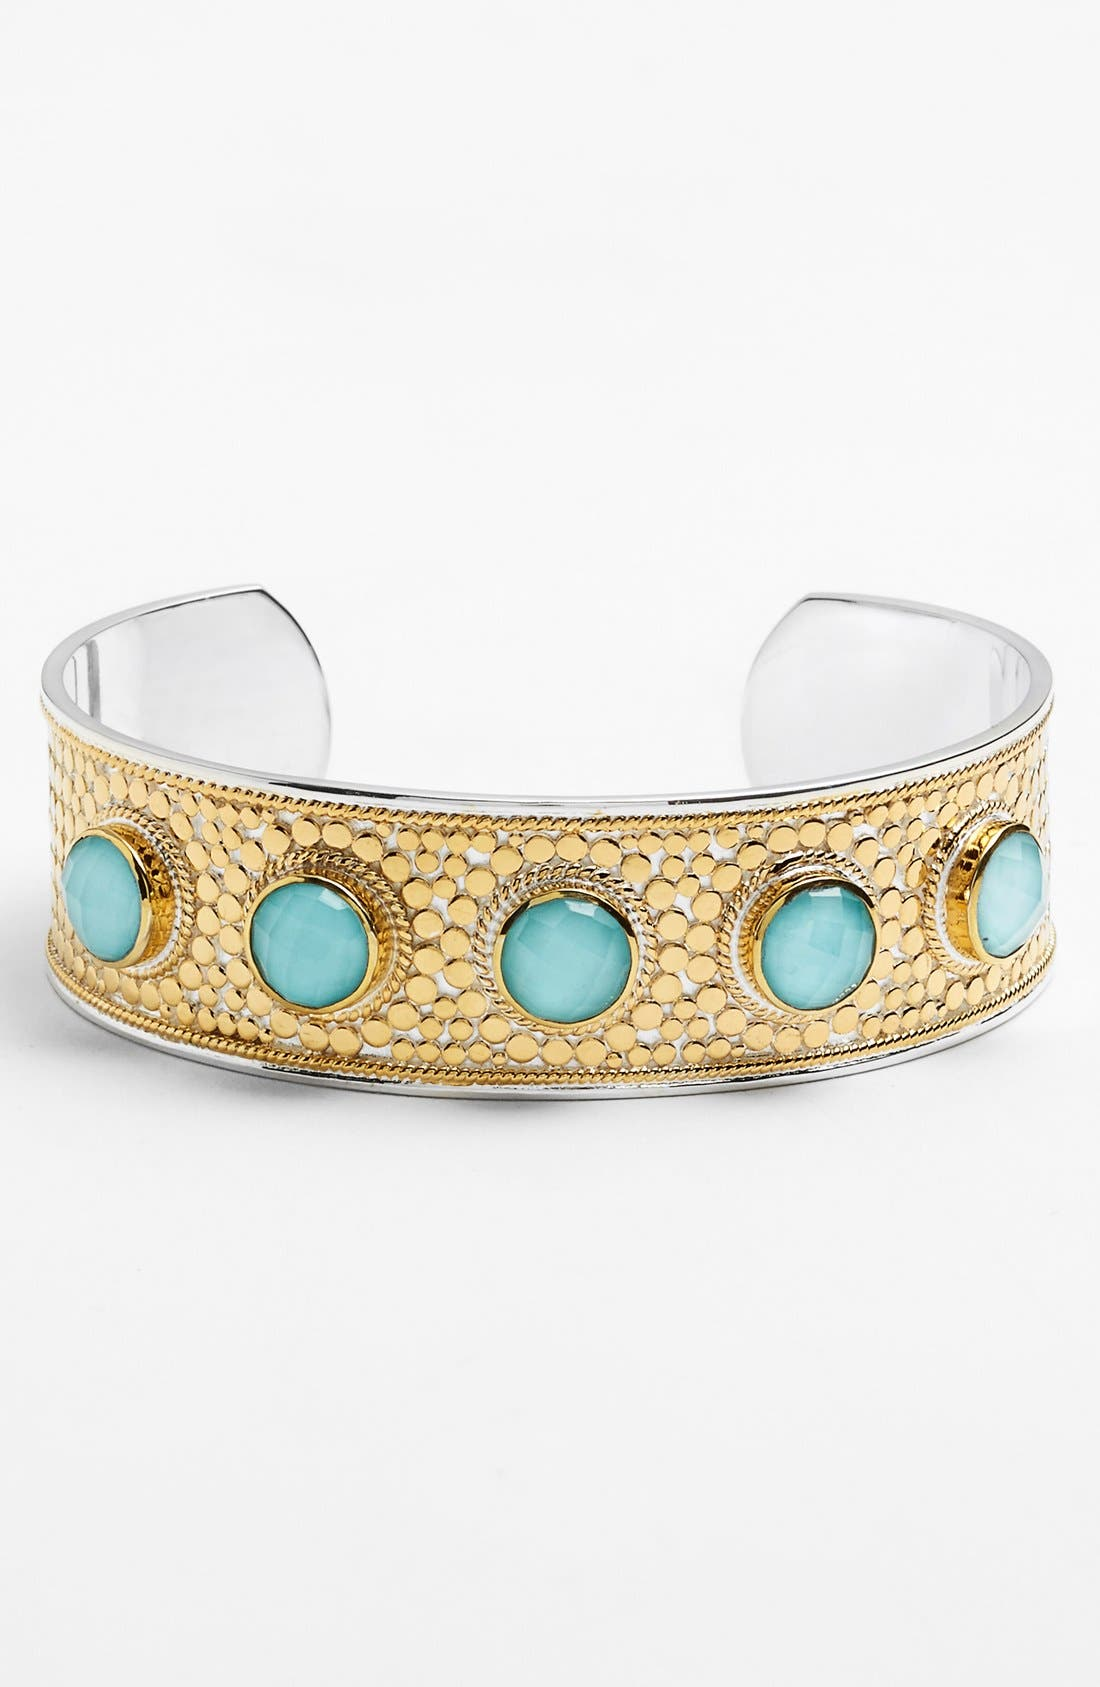 Alternate Image 1 Selected - Anna Beck 'Gili' Turquoise Stone Cuff